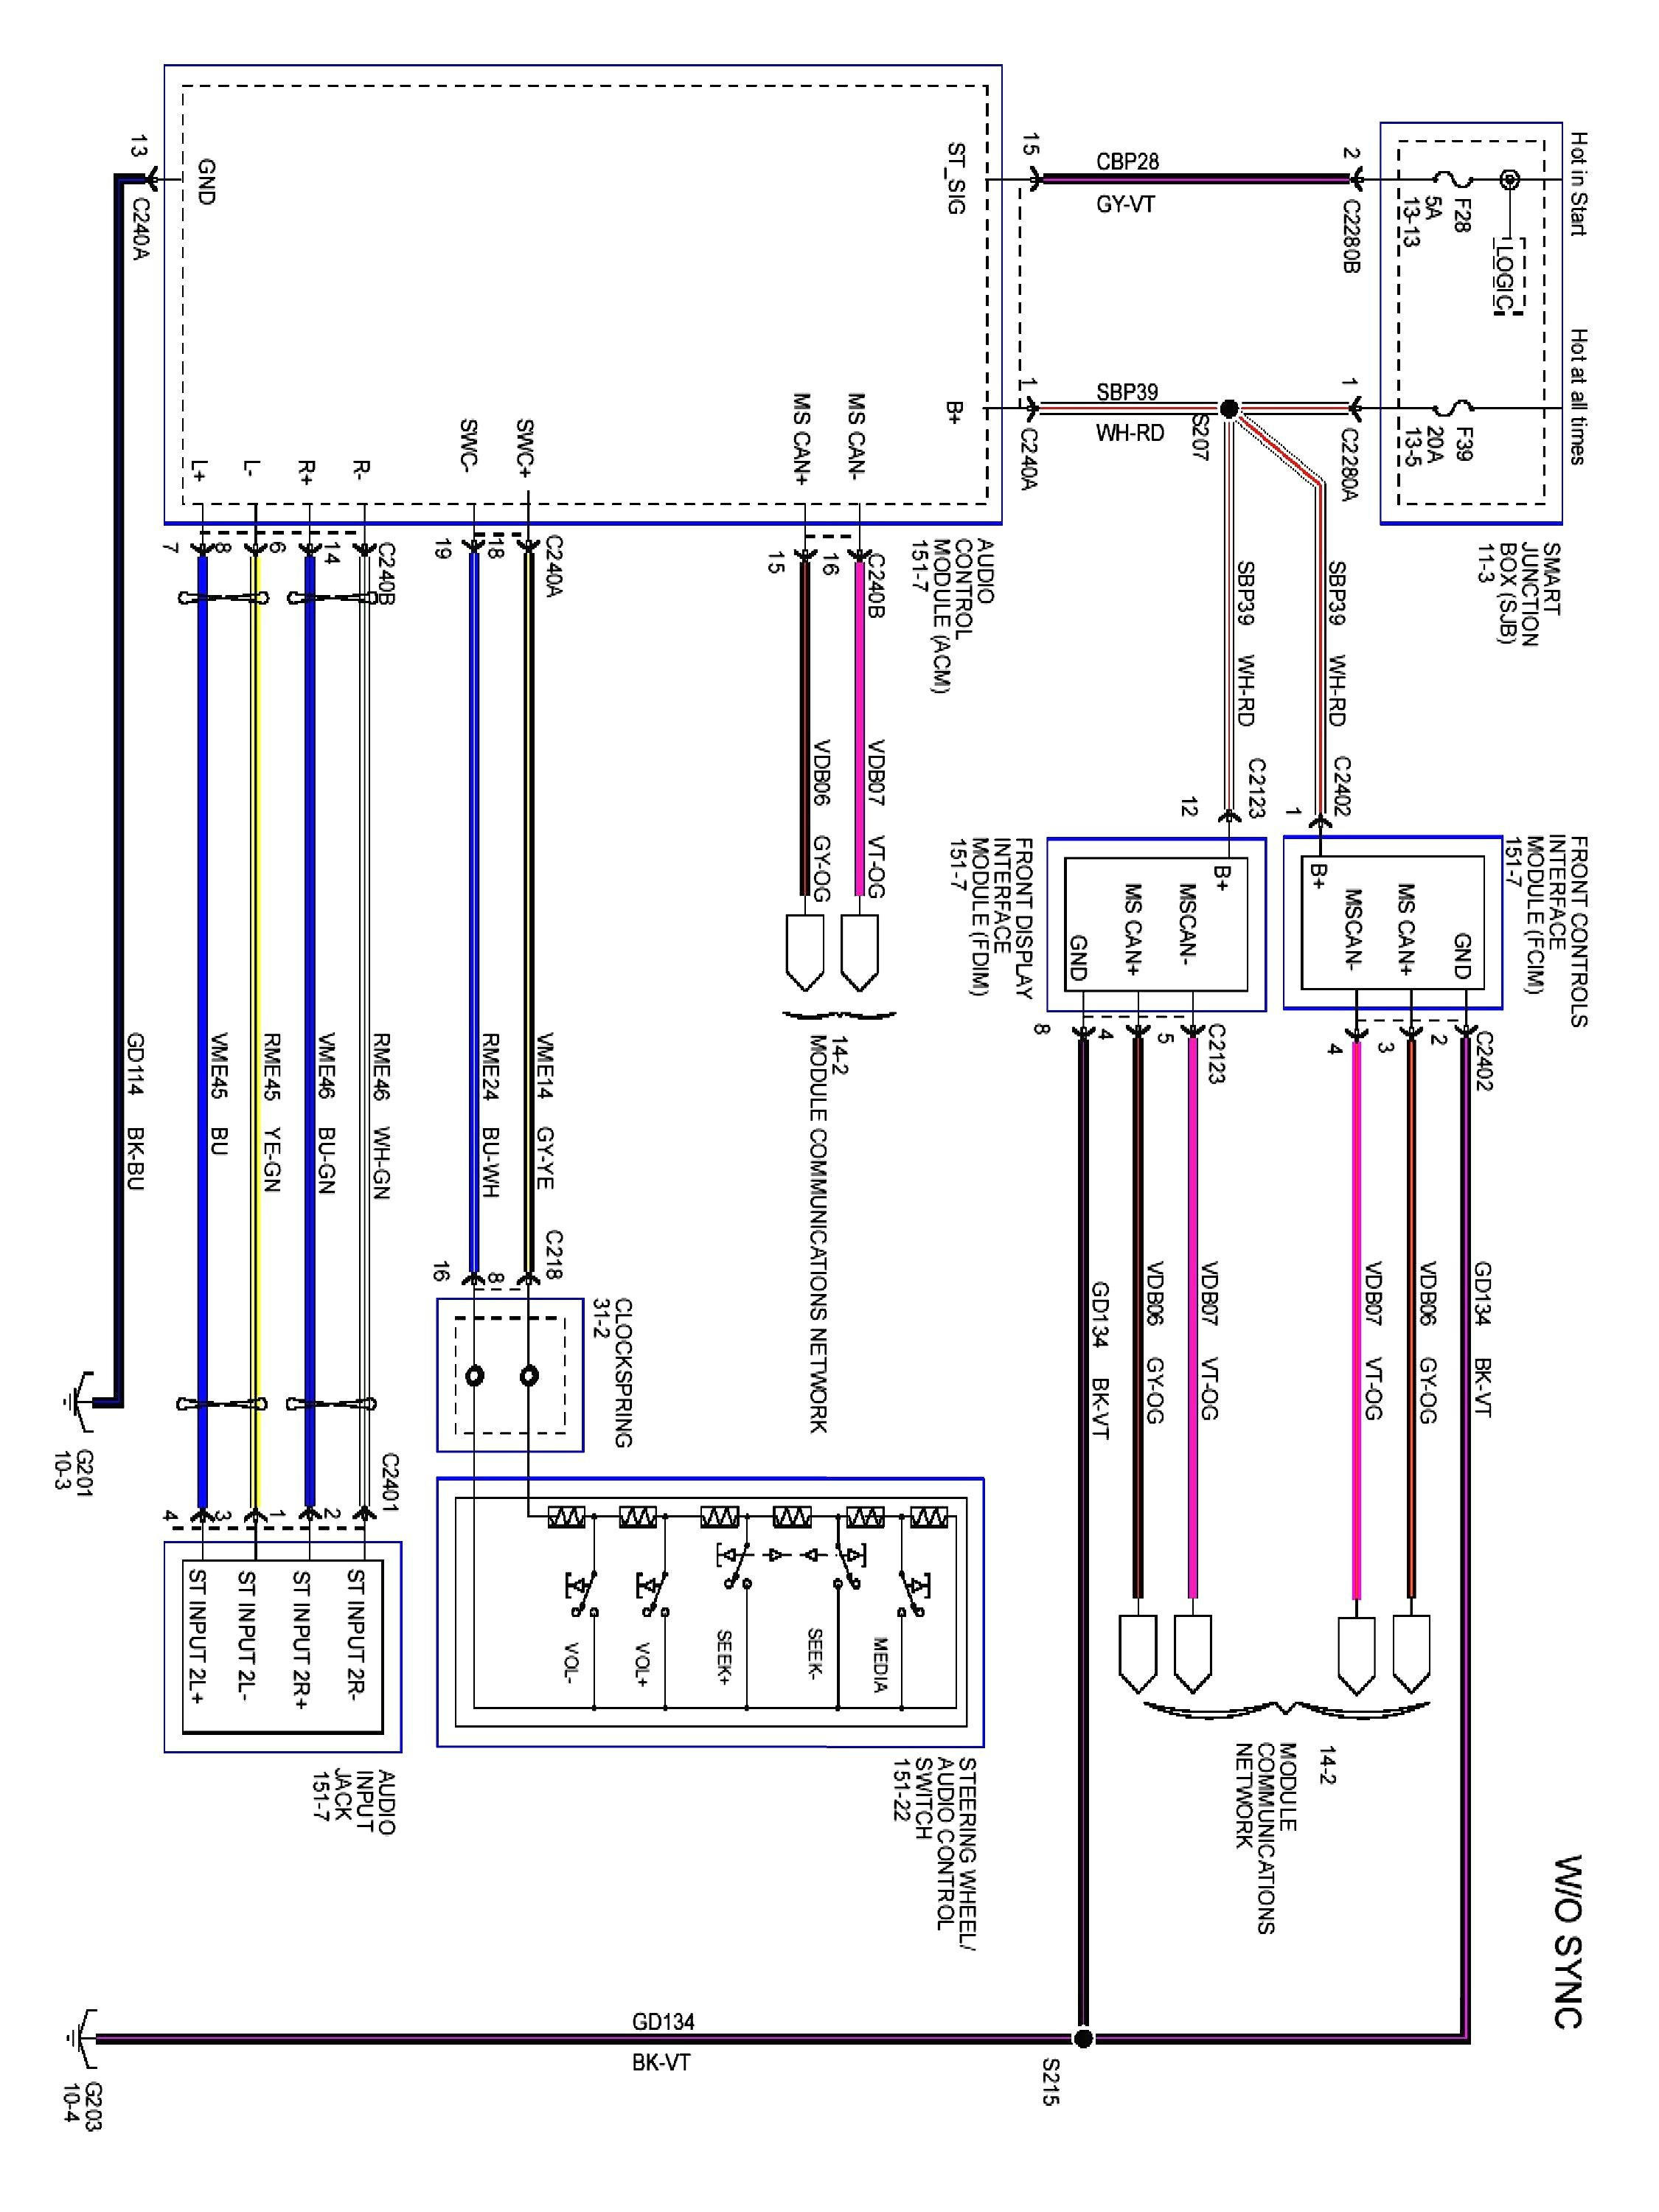 kbic 120 wiring diagram Download-towbar relay wiring diagram save bmw x3 wiring harness electrical rh ipphil bmw x3 trailer 11-a